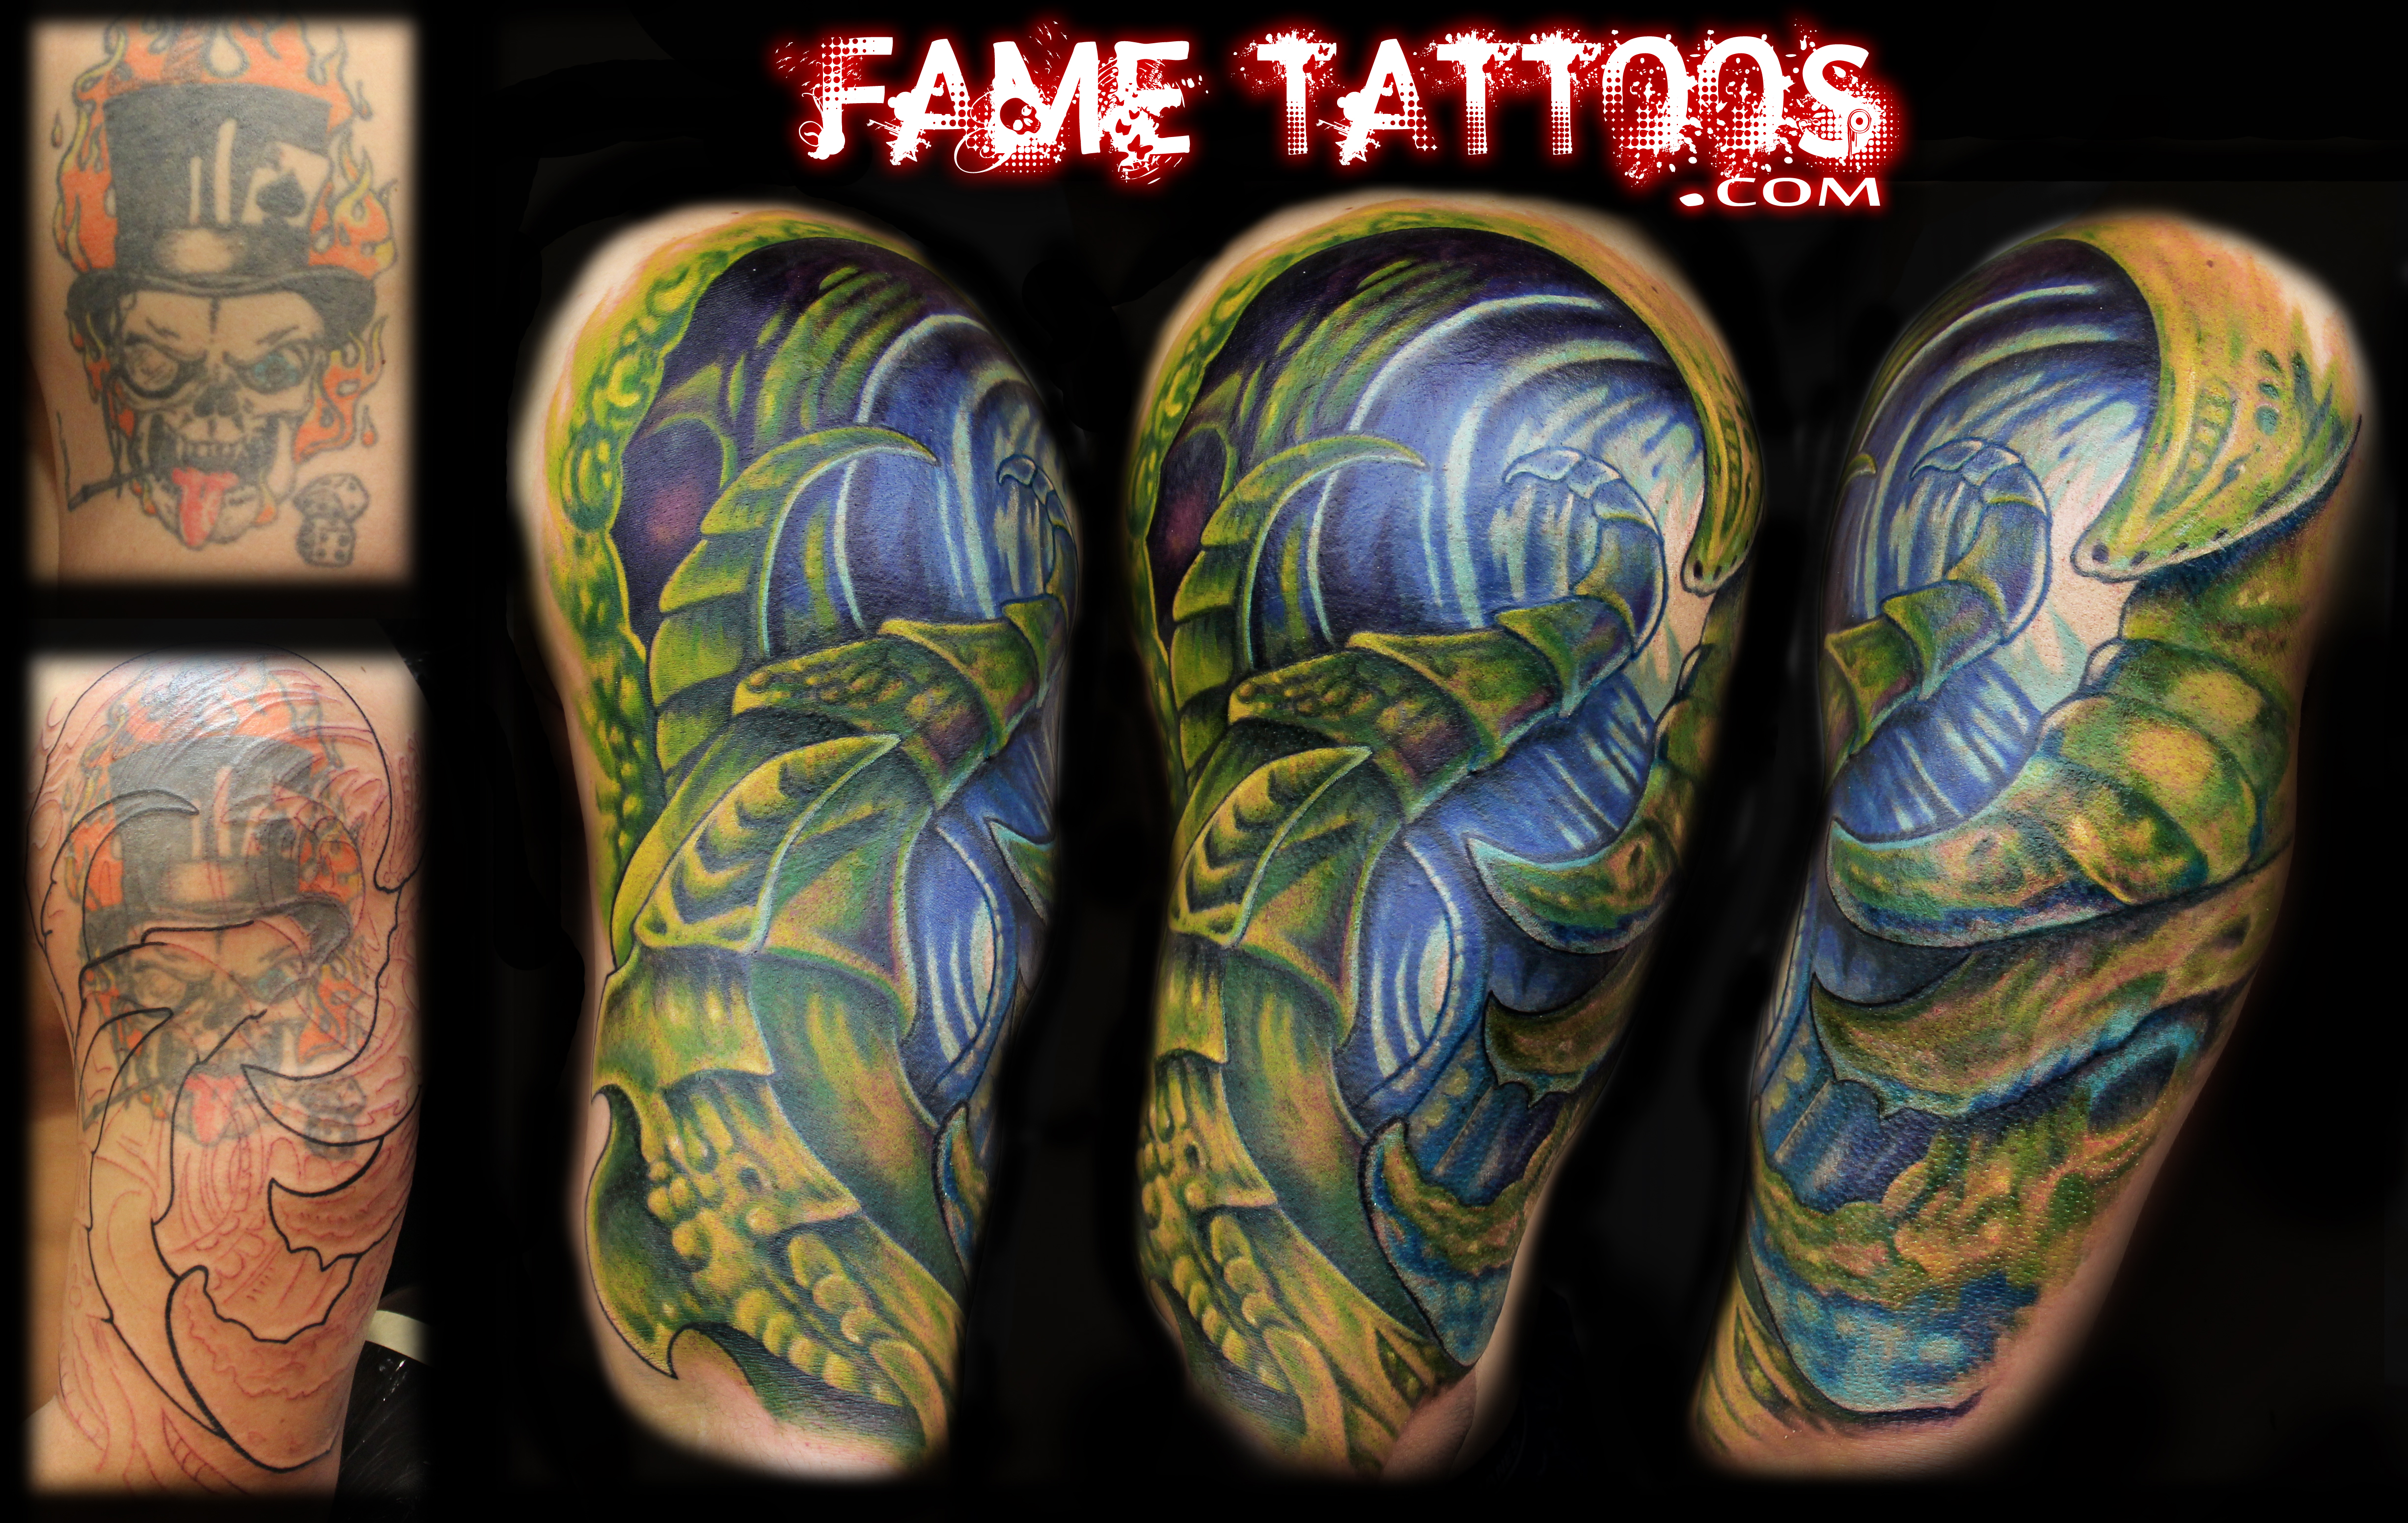 Fame Tattoos Miami S Best Tattoo Shop With The Best Tattoo Artist Bio Organic Cover Up Fame